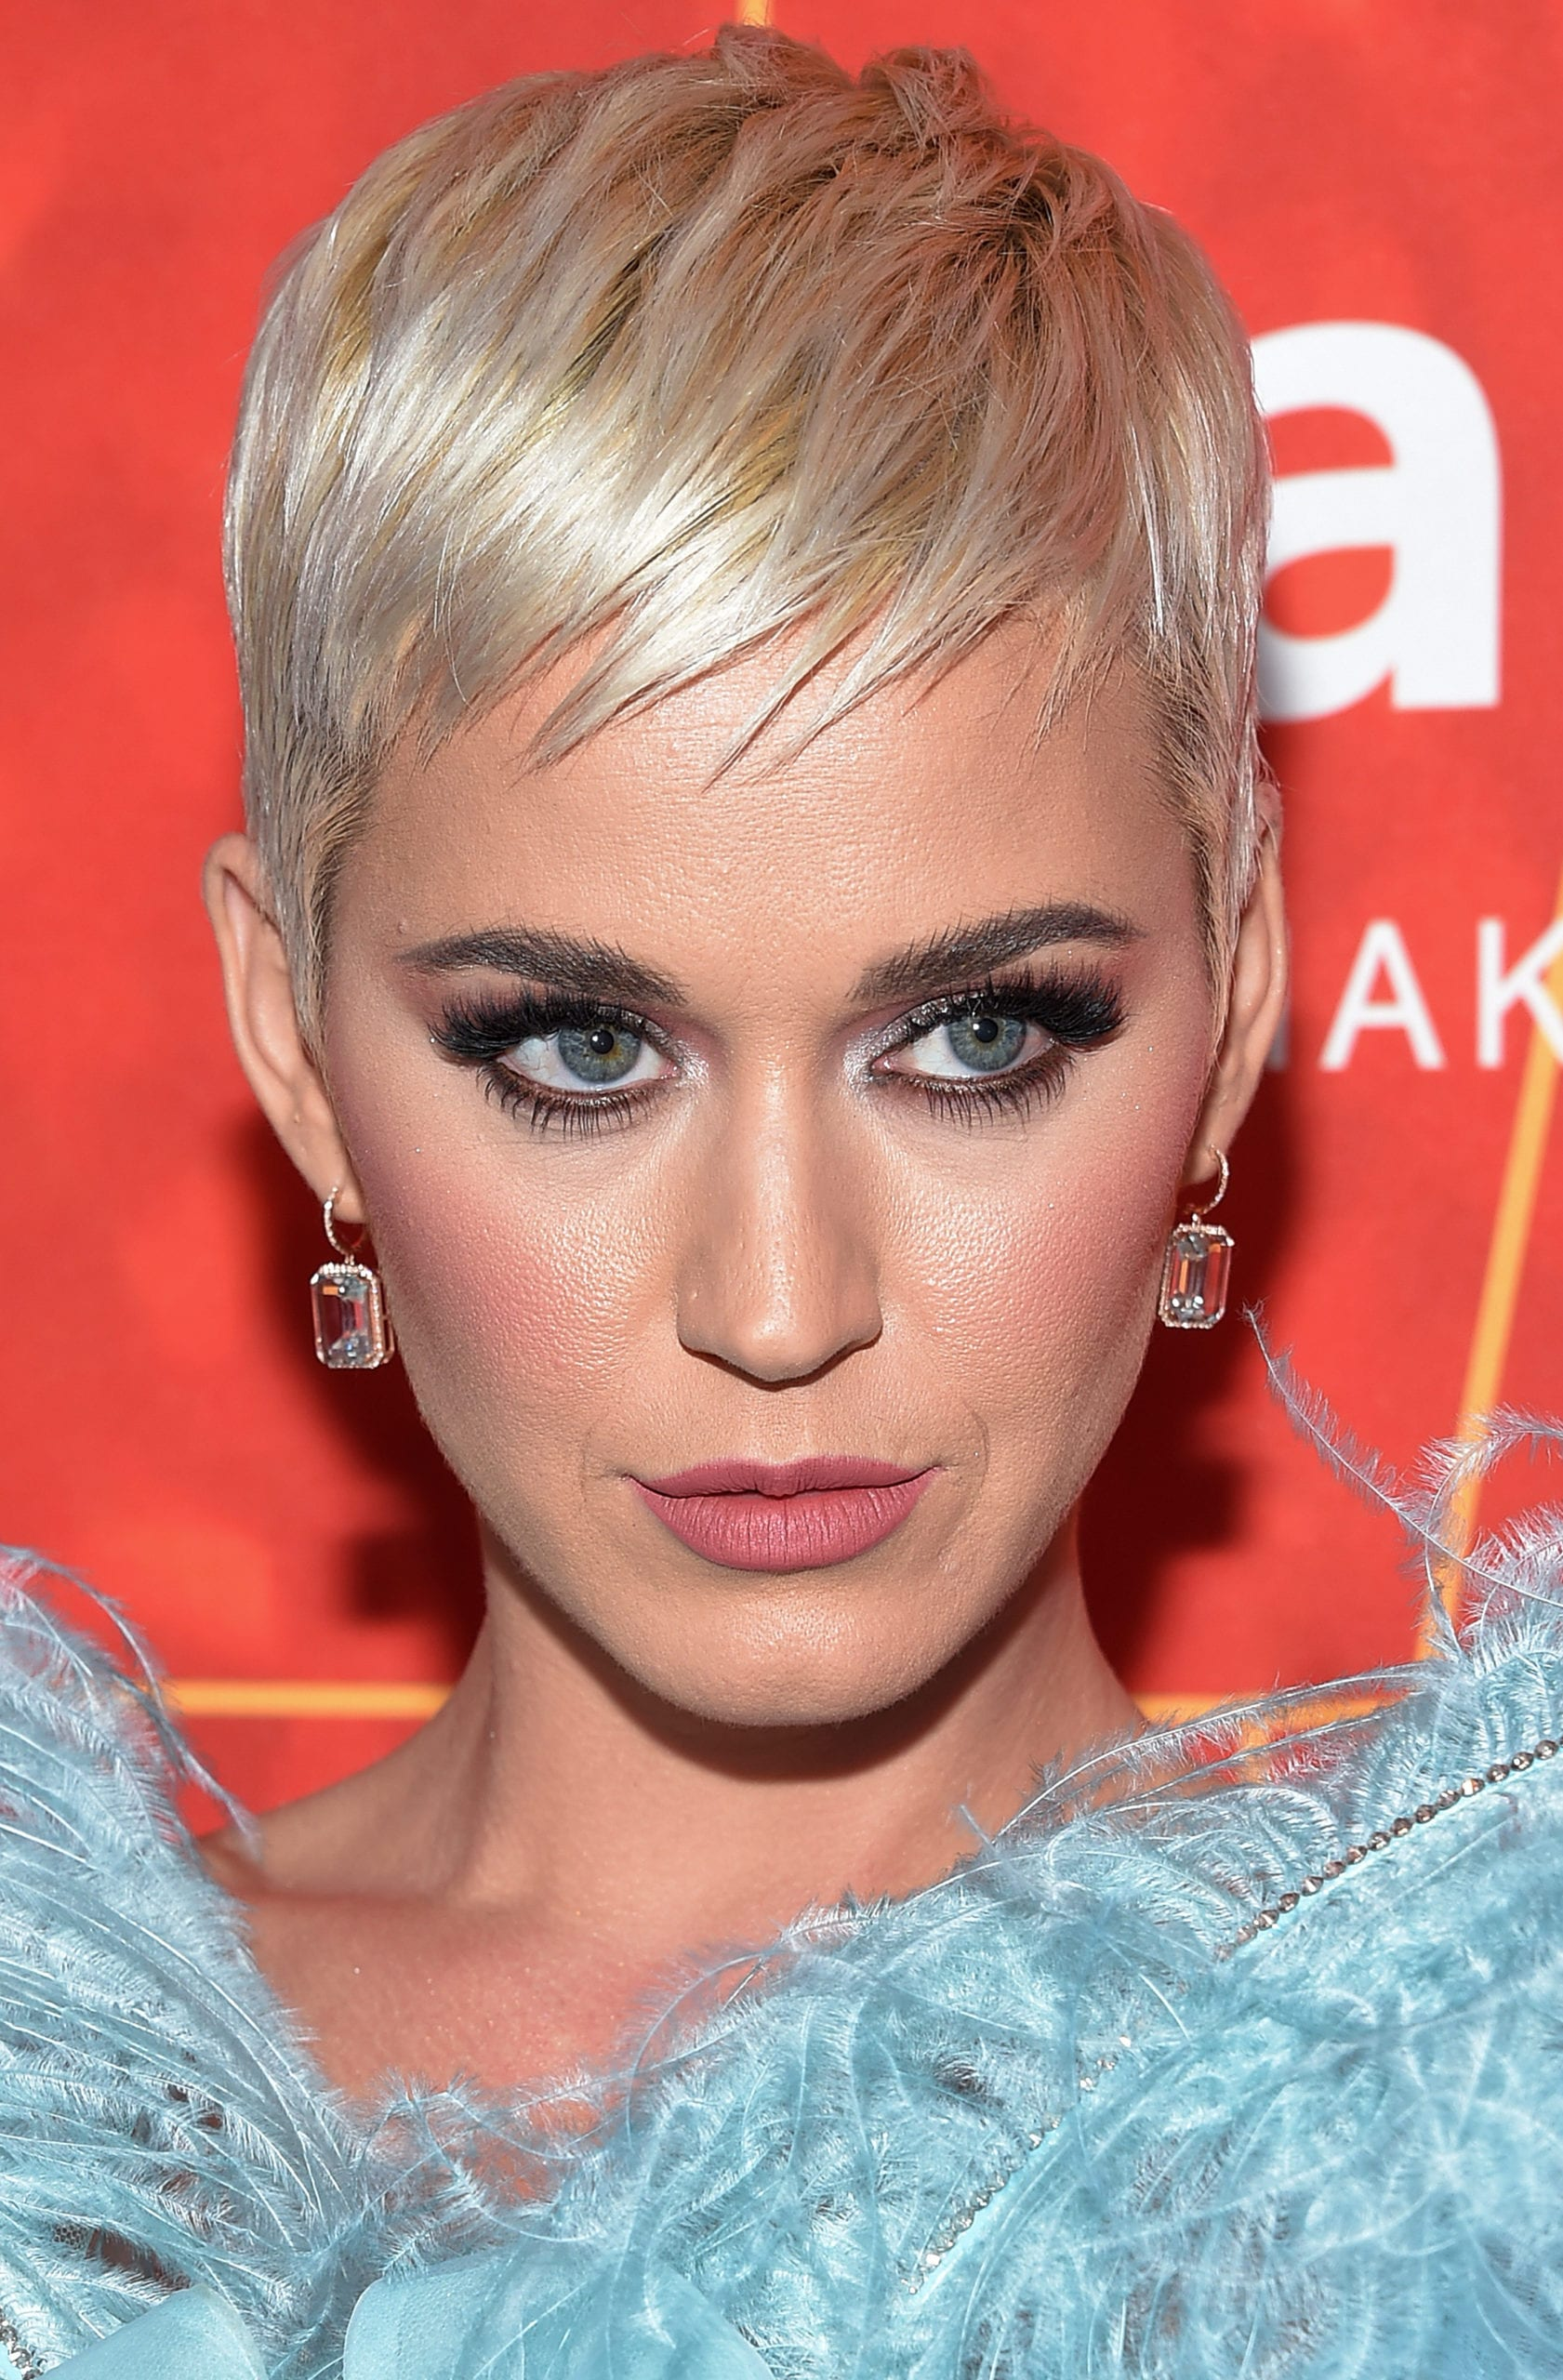 Katy Perry' Pixie and Spiky Bangs